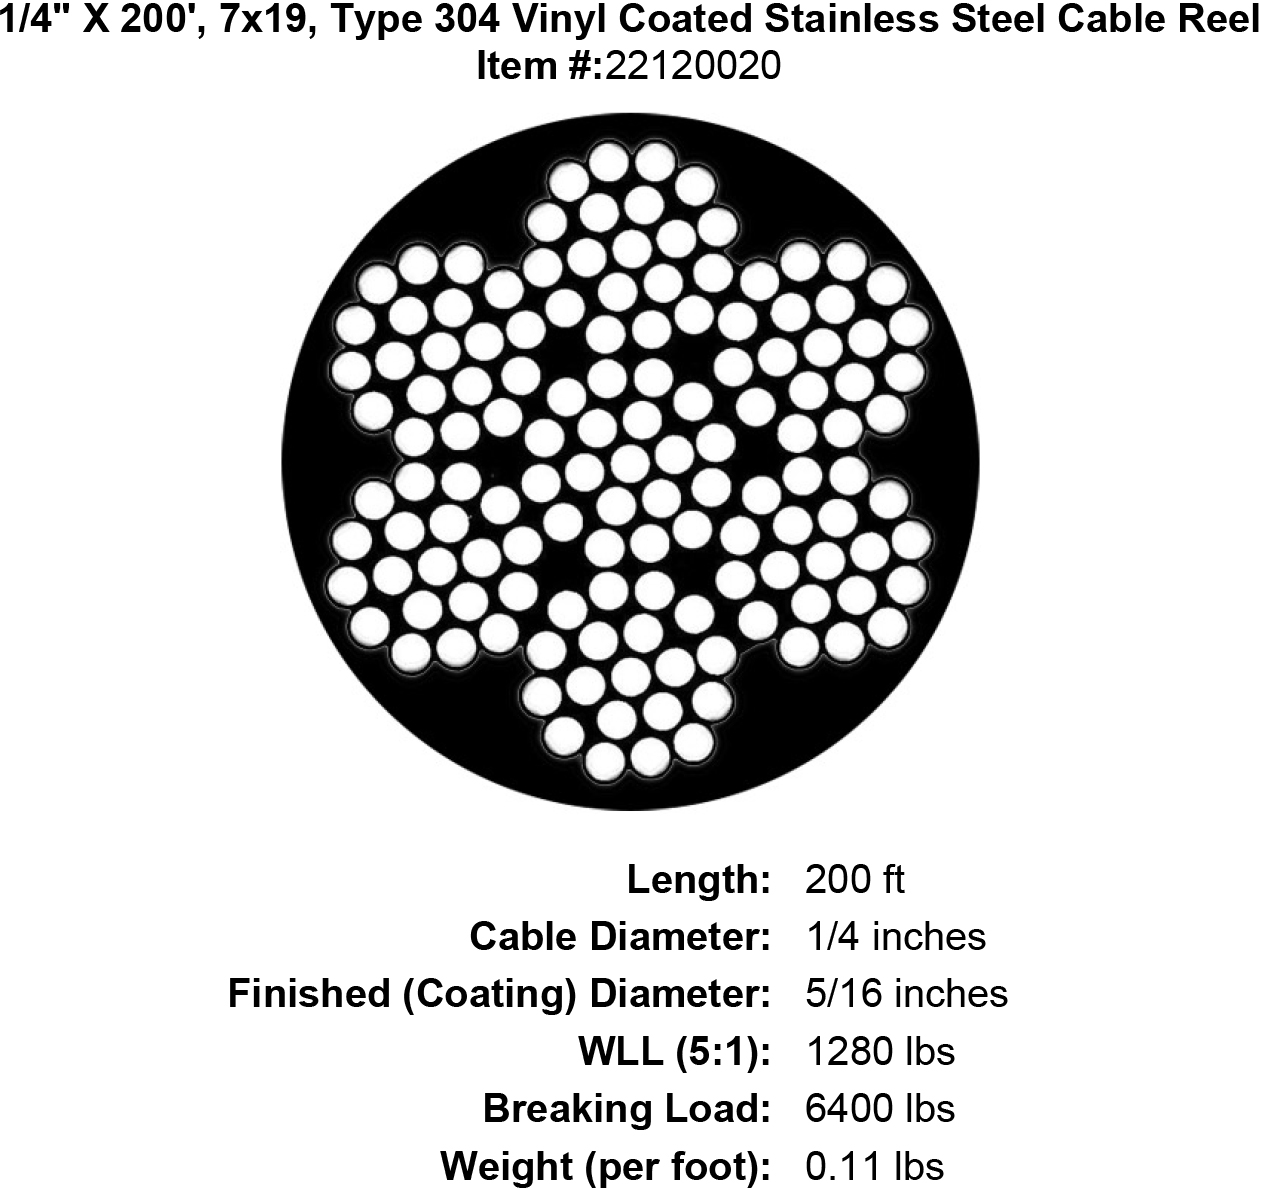 Stainless steel wire rope weight per foot wire center 1 4 x 200 7x19 type 304 vinyl coated stainless steel cable reel rh e rigging com wire rope weight chart weight of wire rope slings greentooth Gallery